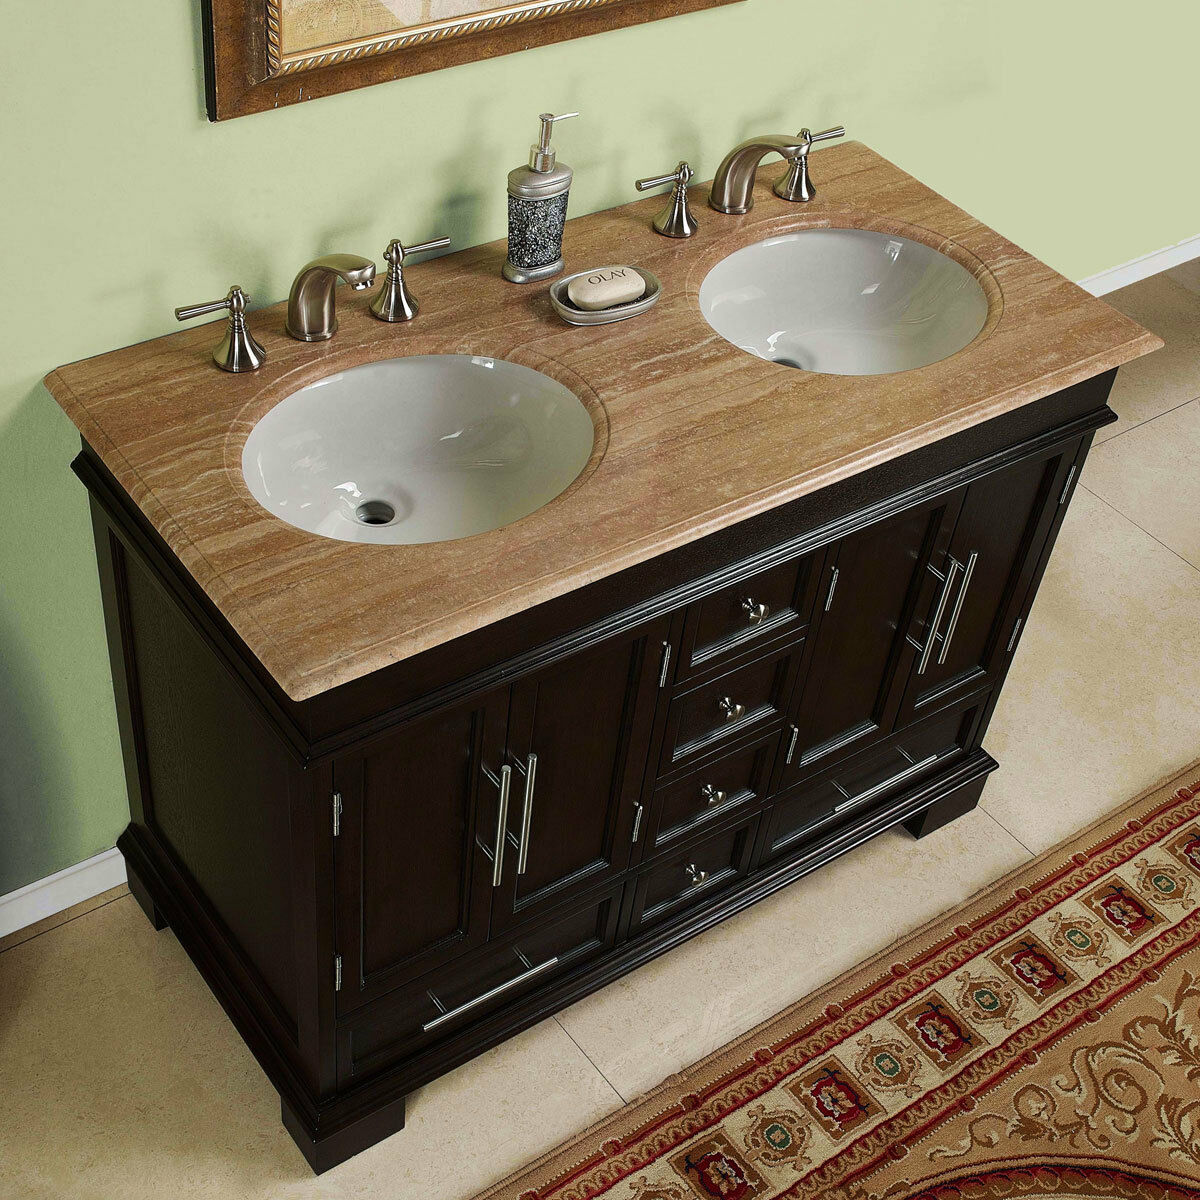 48 Bathroom Vanity Cabinet Details About 48 Inch Compact Double Sink Travertine Stone Top Bathroom Vanity Cabinet 0224tr